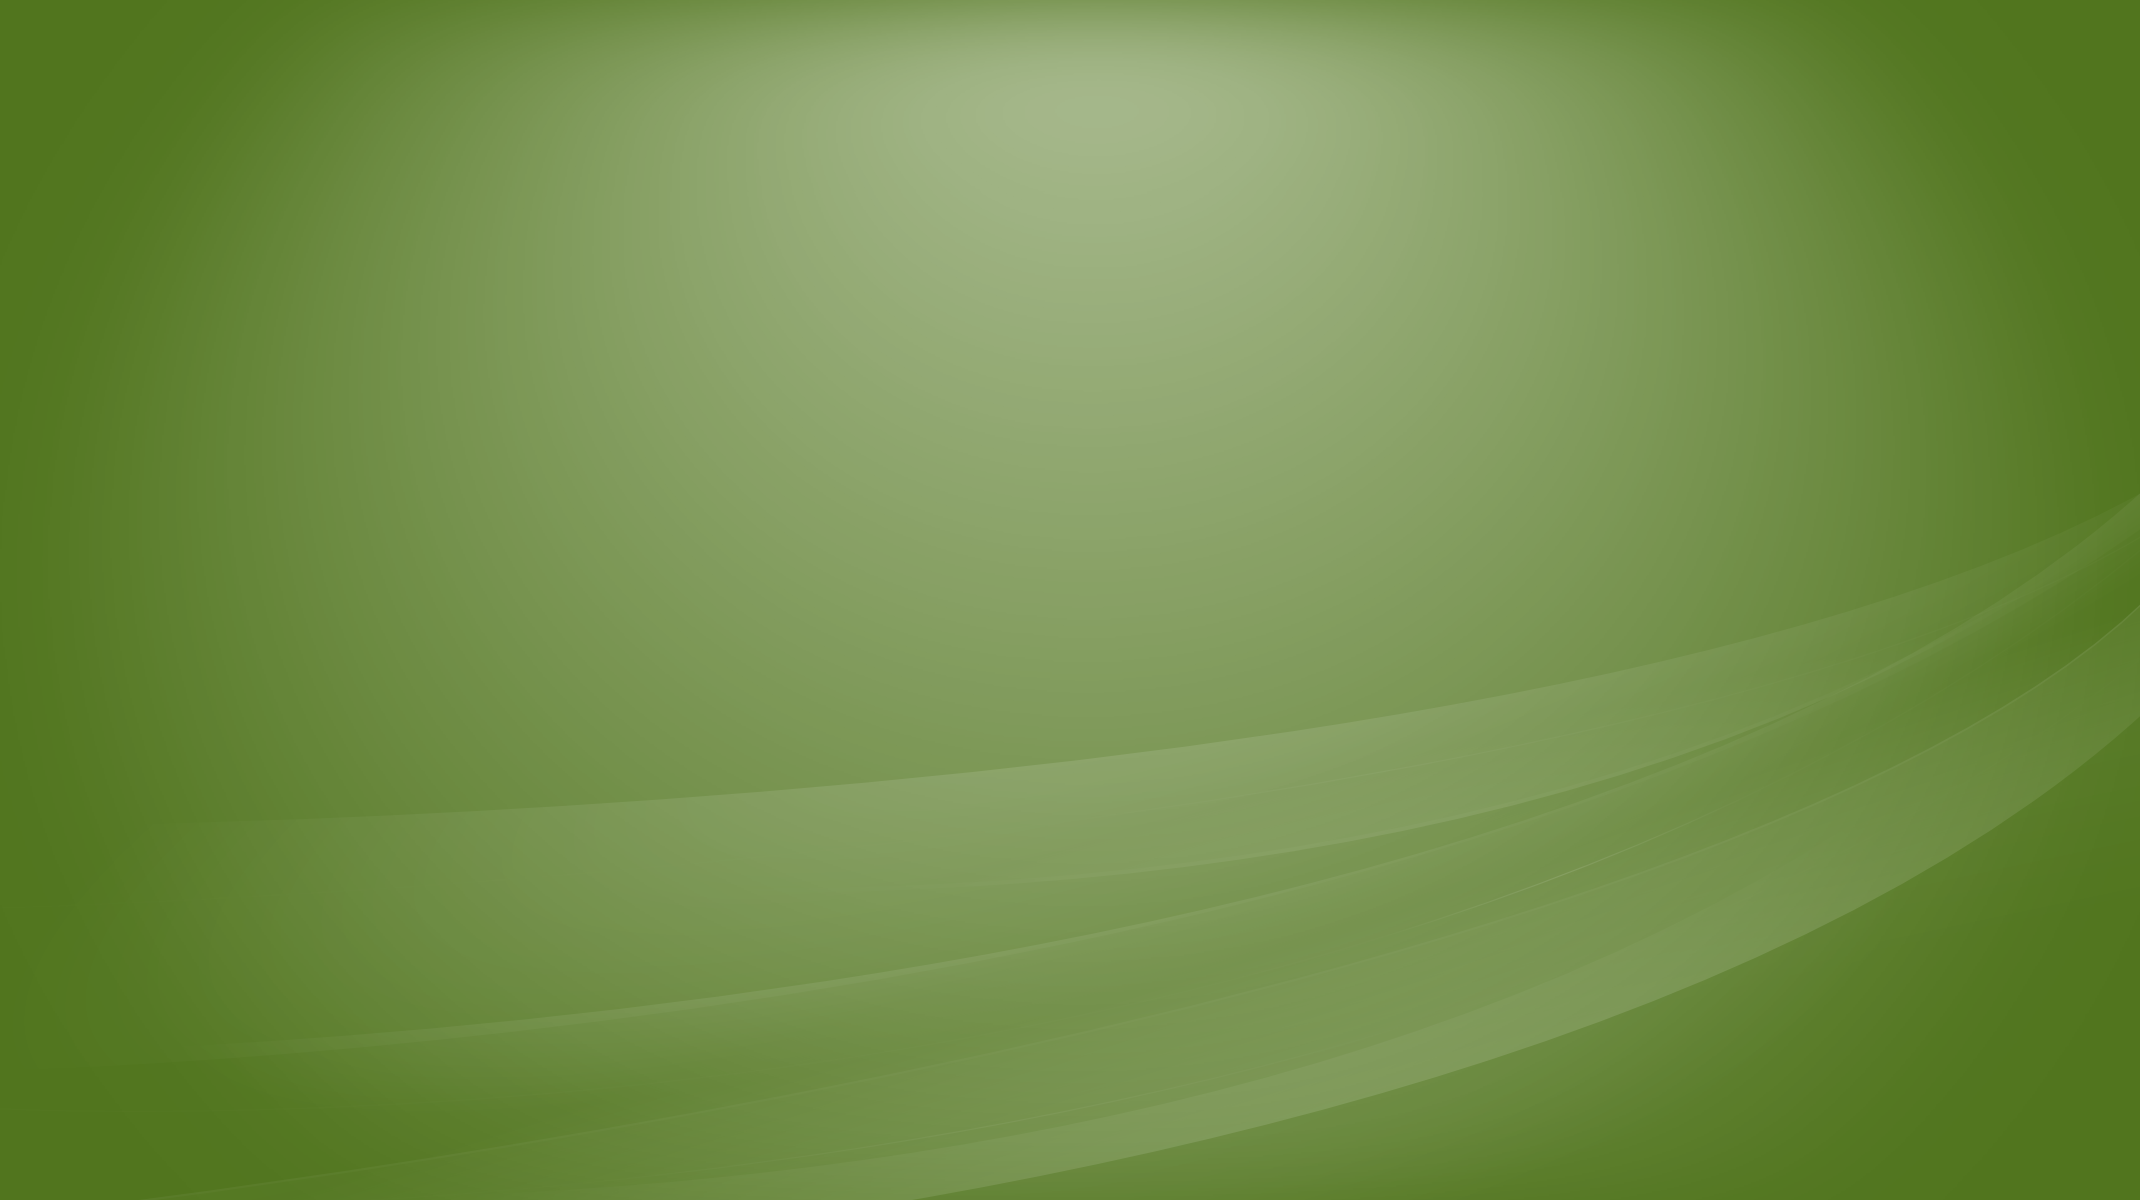 Linux Mint Wallpapers 2140x1200 HQ Wallpapers 2140x1200